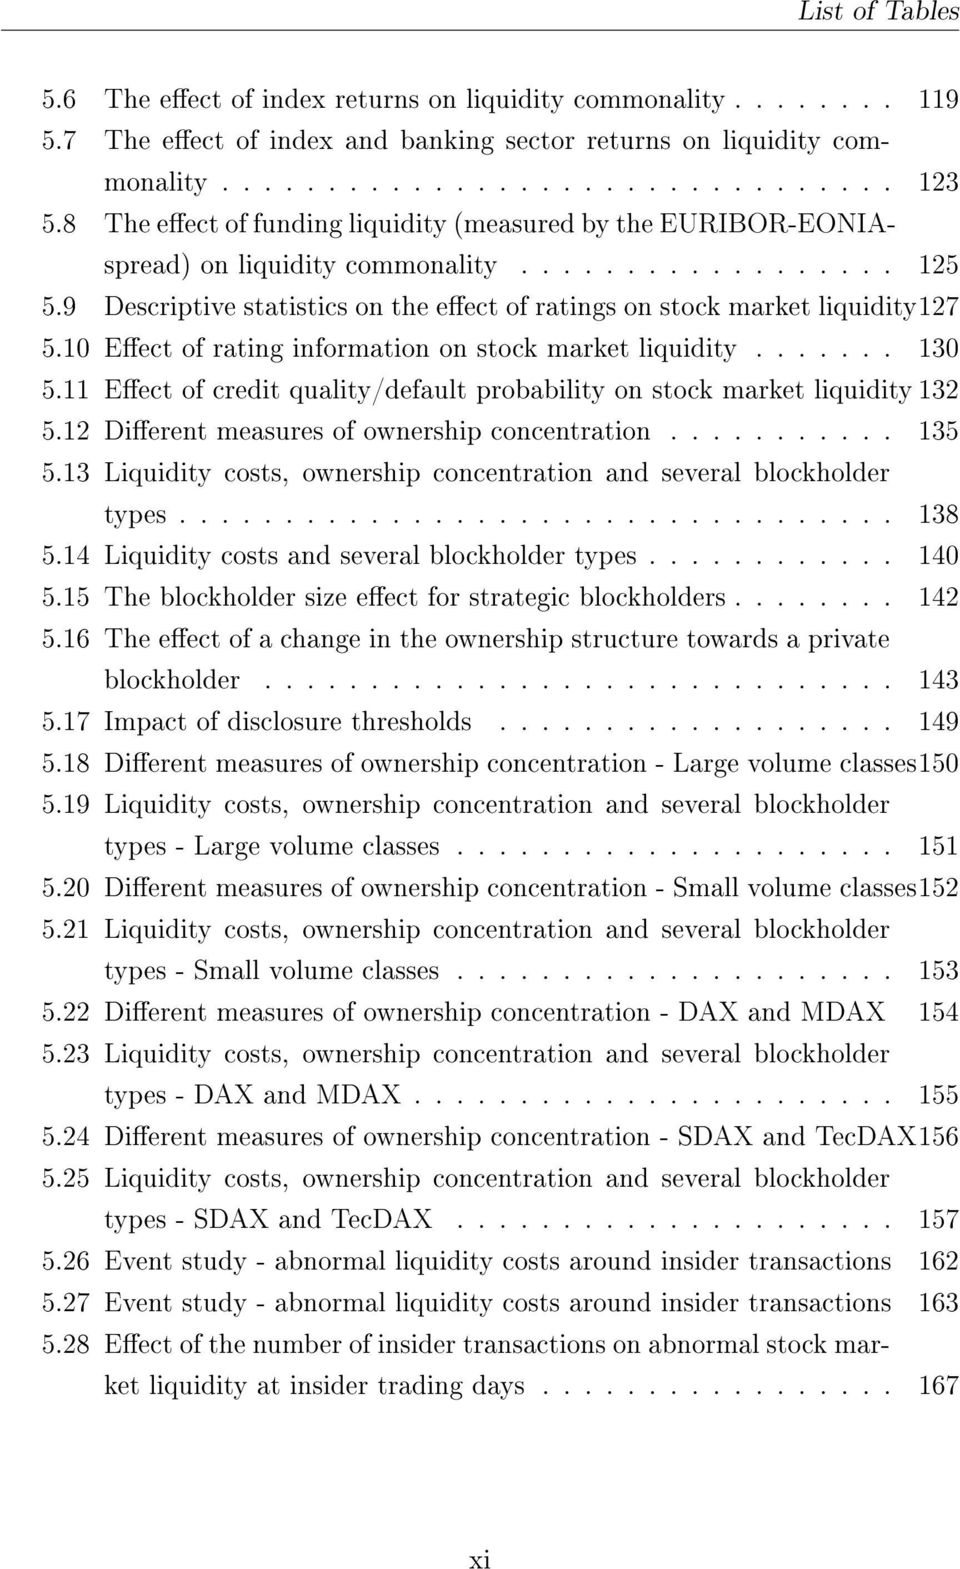 10 Eect of rating information on stock market liquidity....... 130 5.11 Eect of credit quality/default probability on stock market liquidity 132 5.12 Dierent measures of ownership concentration.